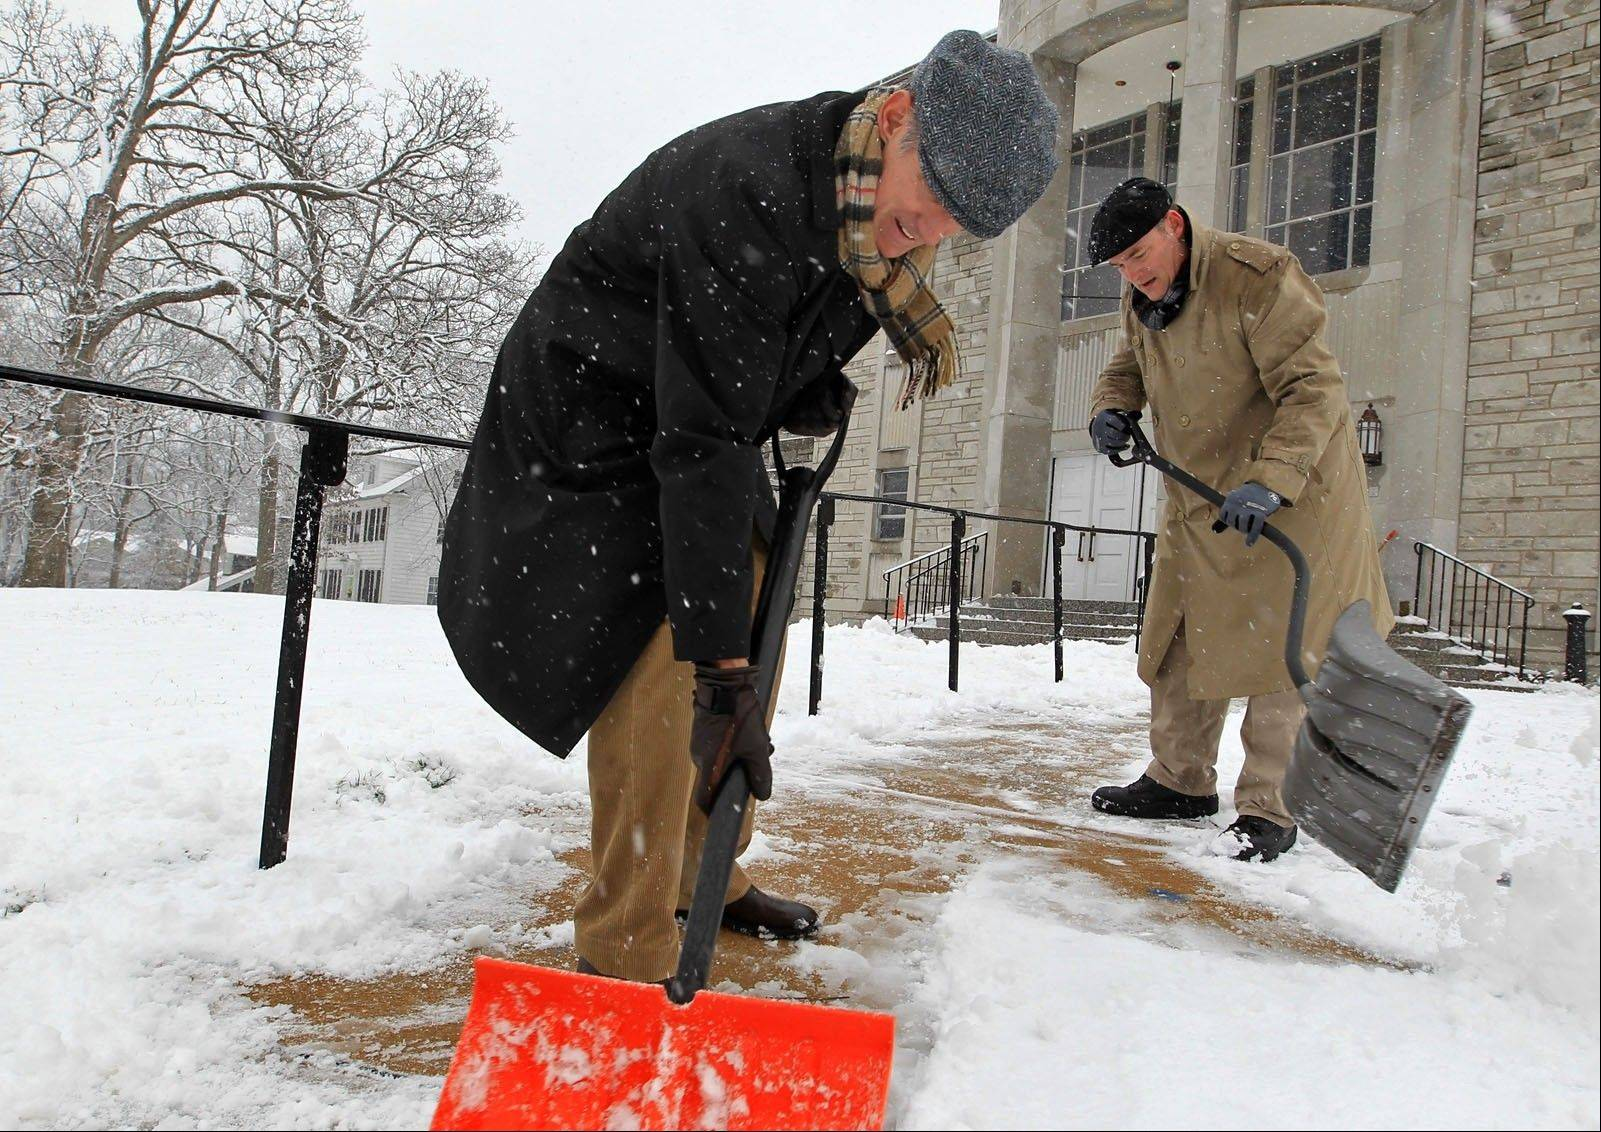 Volunteers Tim Noonan and Larry Voss, both of Glendale, Mo., shovel the walks in front of Mary Queen of Peace Church in nearby Webster Groves, Mo., on Sunday morning, March 24, 2013, before going inside for Mass.